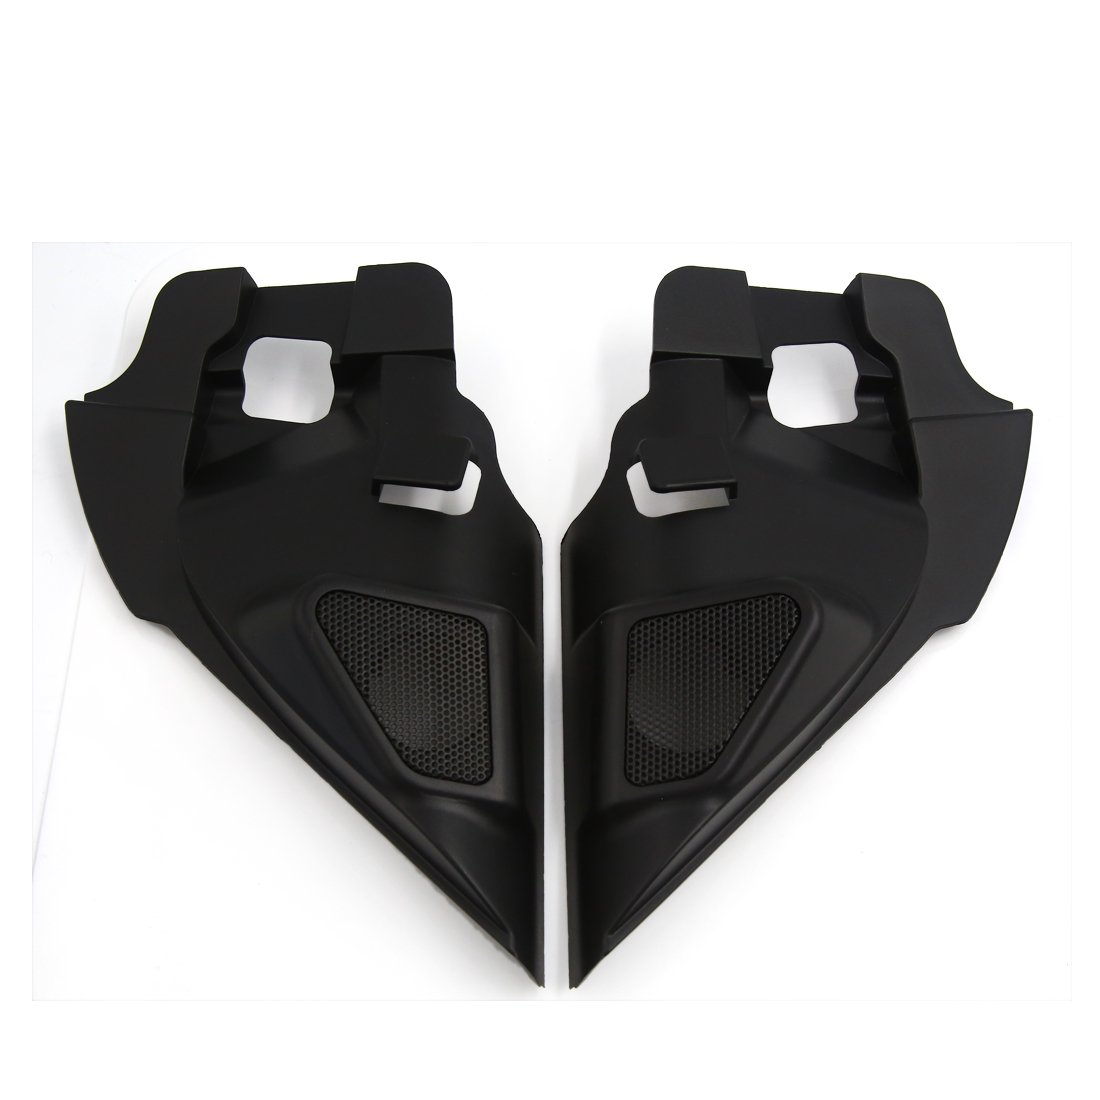 uxcell 2 Pcs Black Plastic Car Horn trumpet Dustproof Cover for 2014 Nissan X-Trail